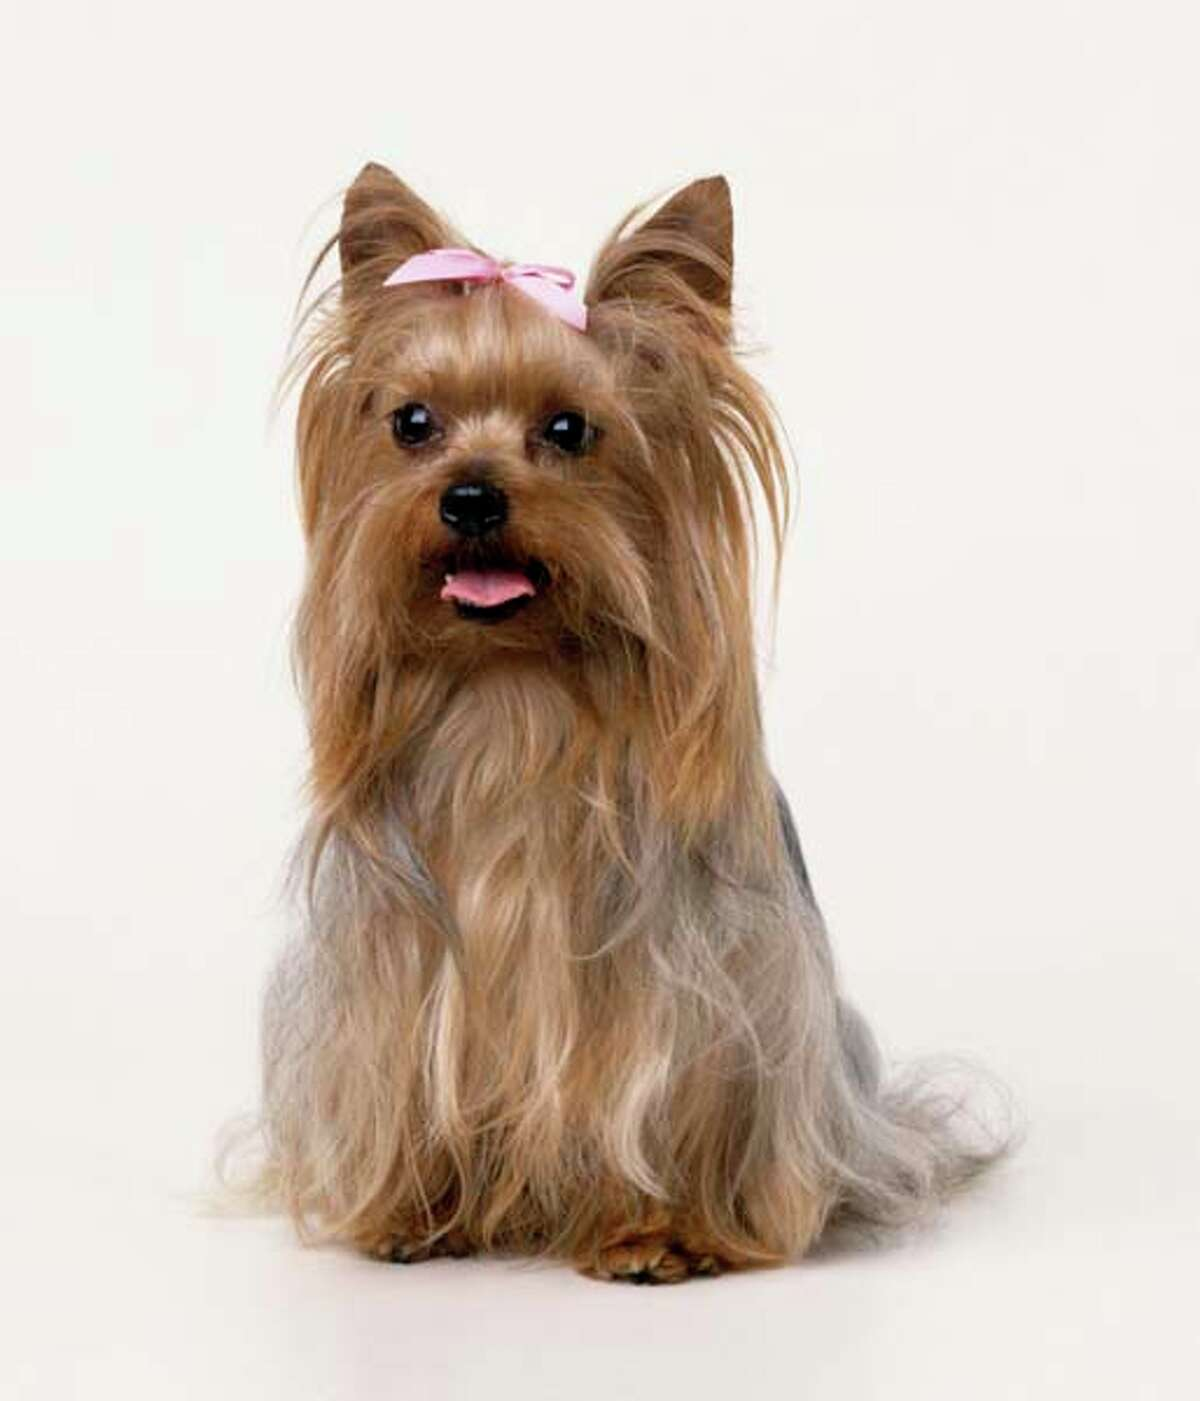 Yorkshire Terrier Yorkies have a confident and courageous personality that helps them do well as everything from dog sports to therapy work and makes them great travel companions. Yorkies are incredibly loyal to their owners and prefer to stay close by their side - but don't mistake this for a need to be pampered. Their tendency to bark makes them reliable watchdogs, and their gentle nature makes them a good fit for families with children.